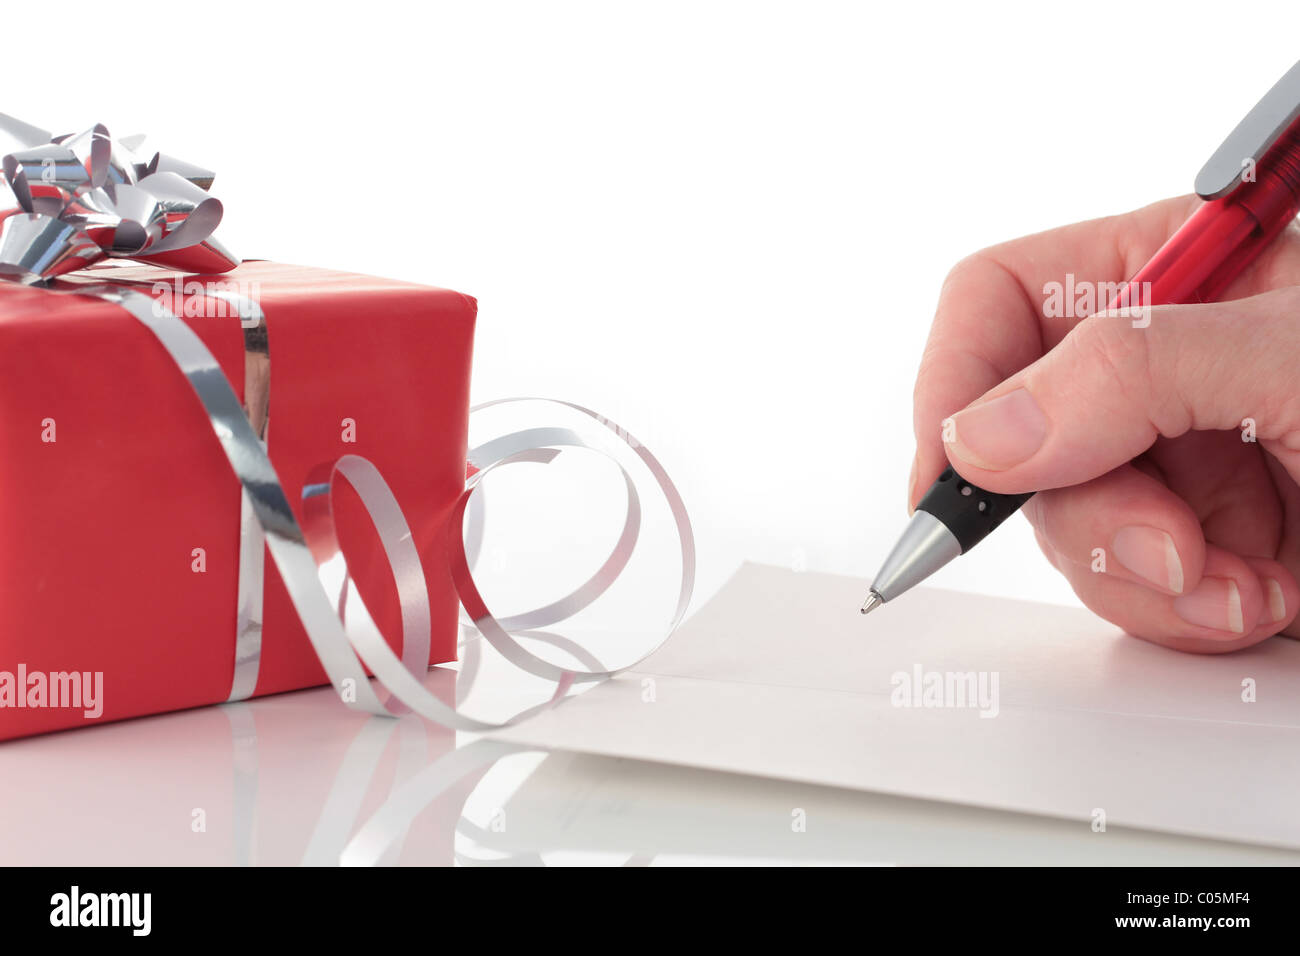 Hand Writing in Card by Red Valentines Day Gift - Stock Image